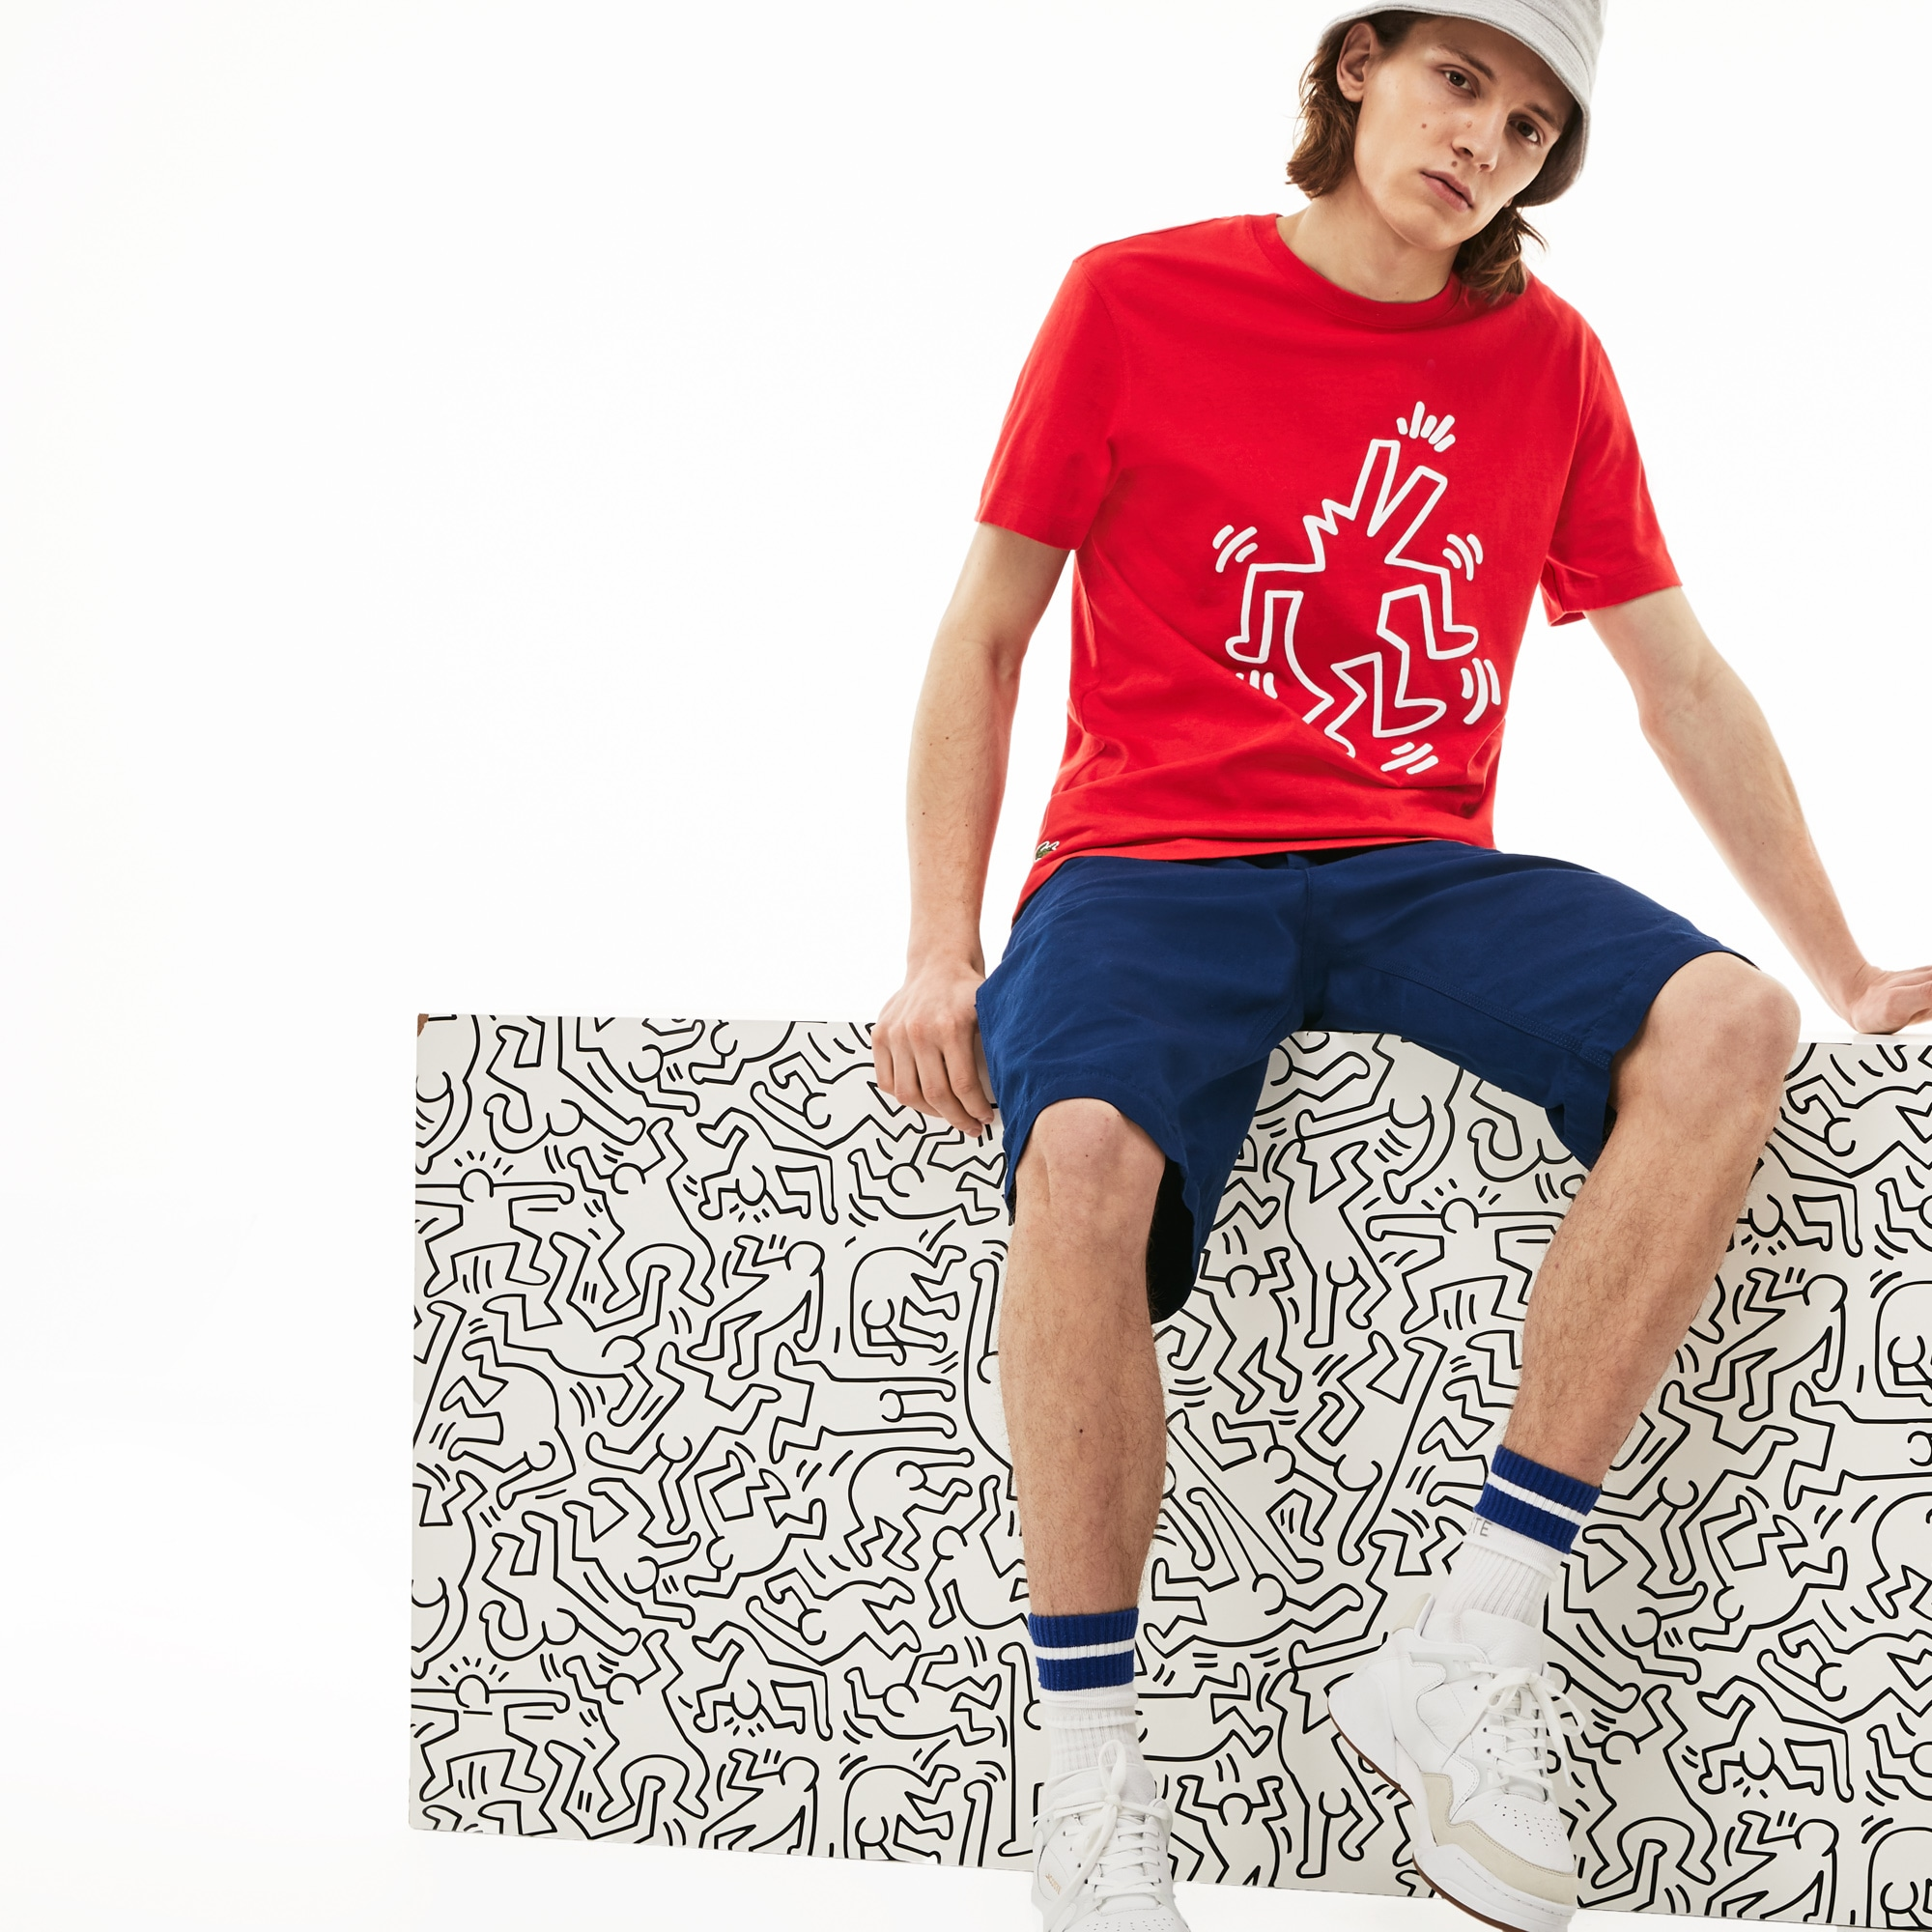 Men's Keith Haring Design Cotton T-shirt